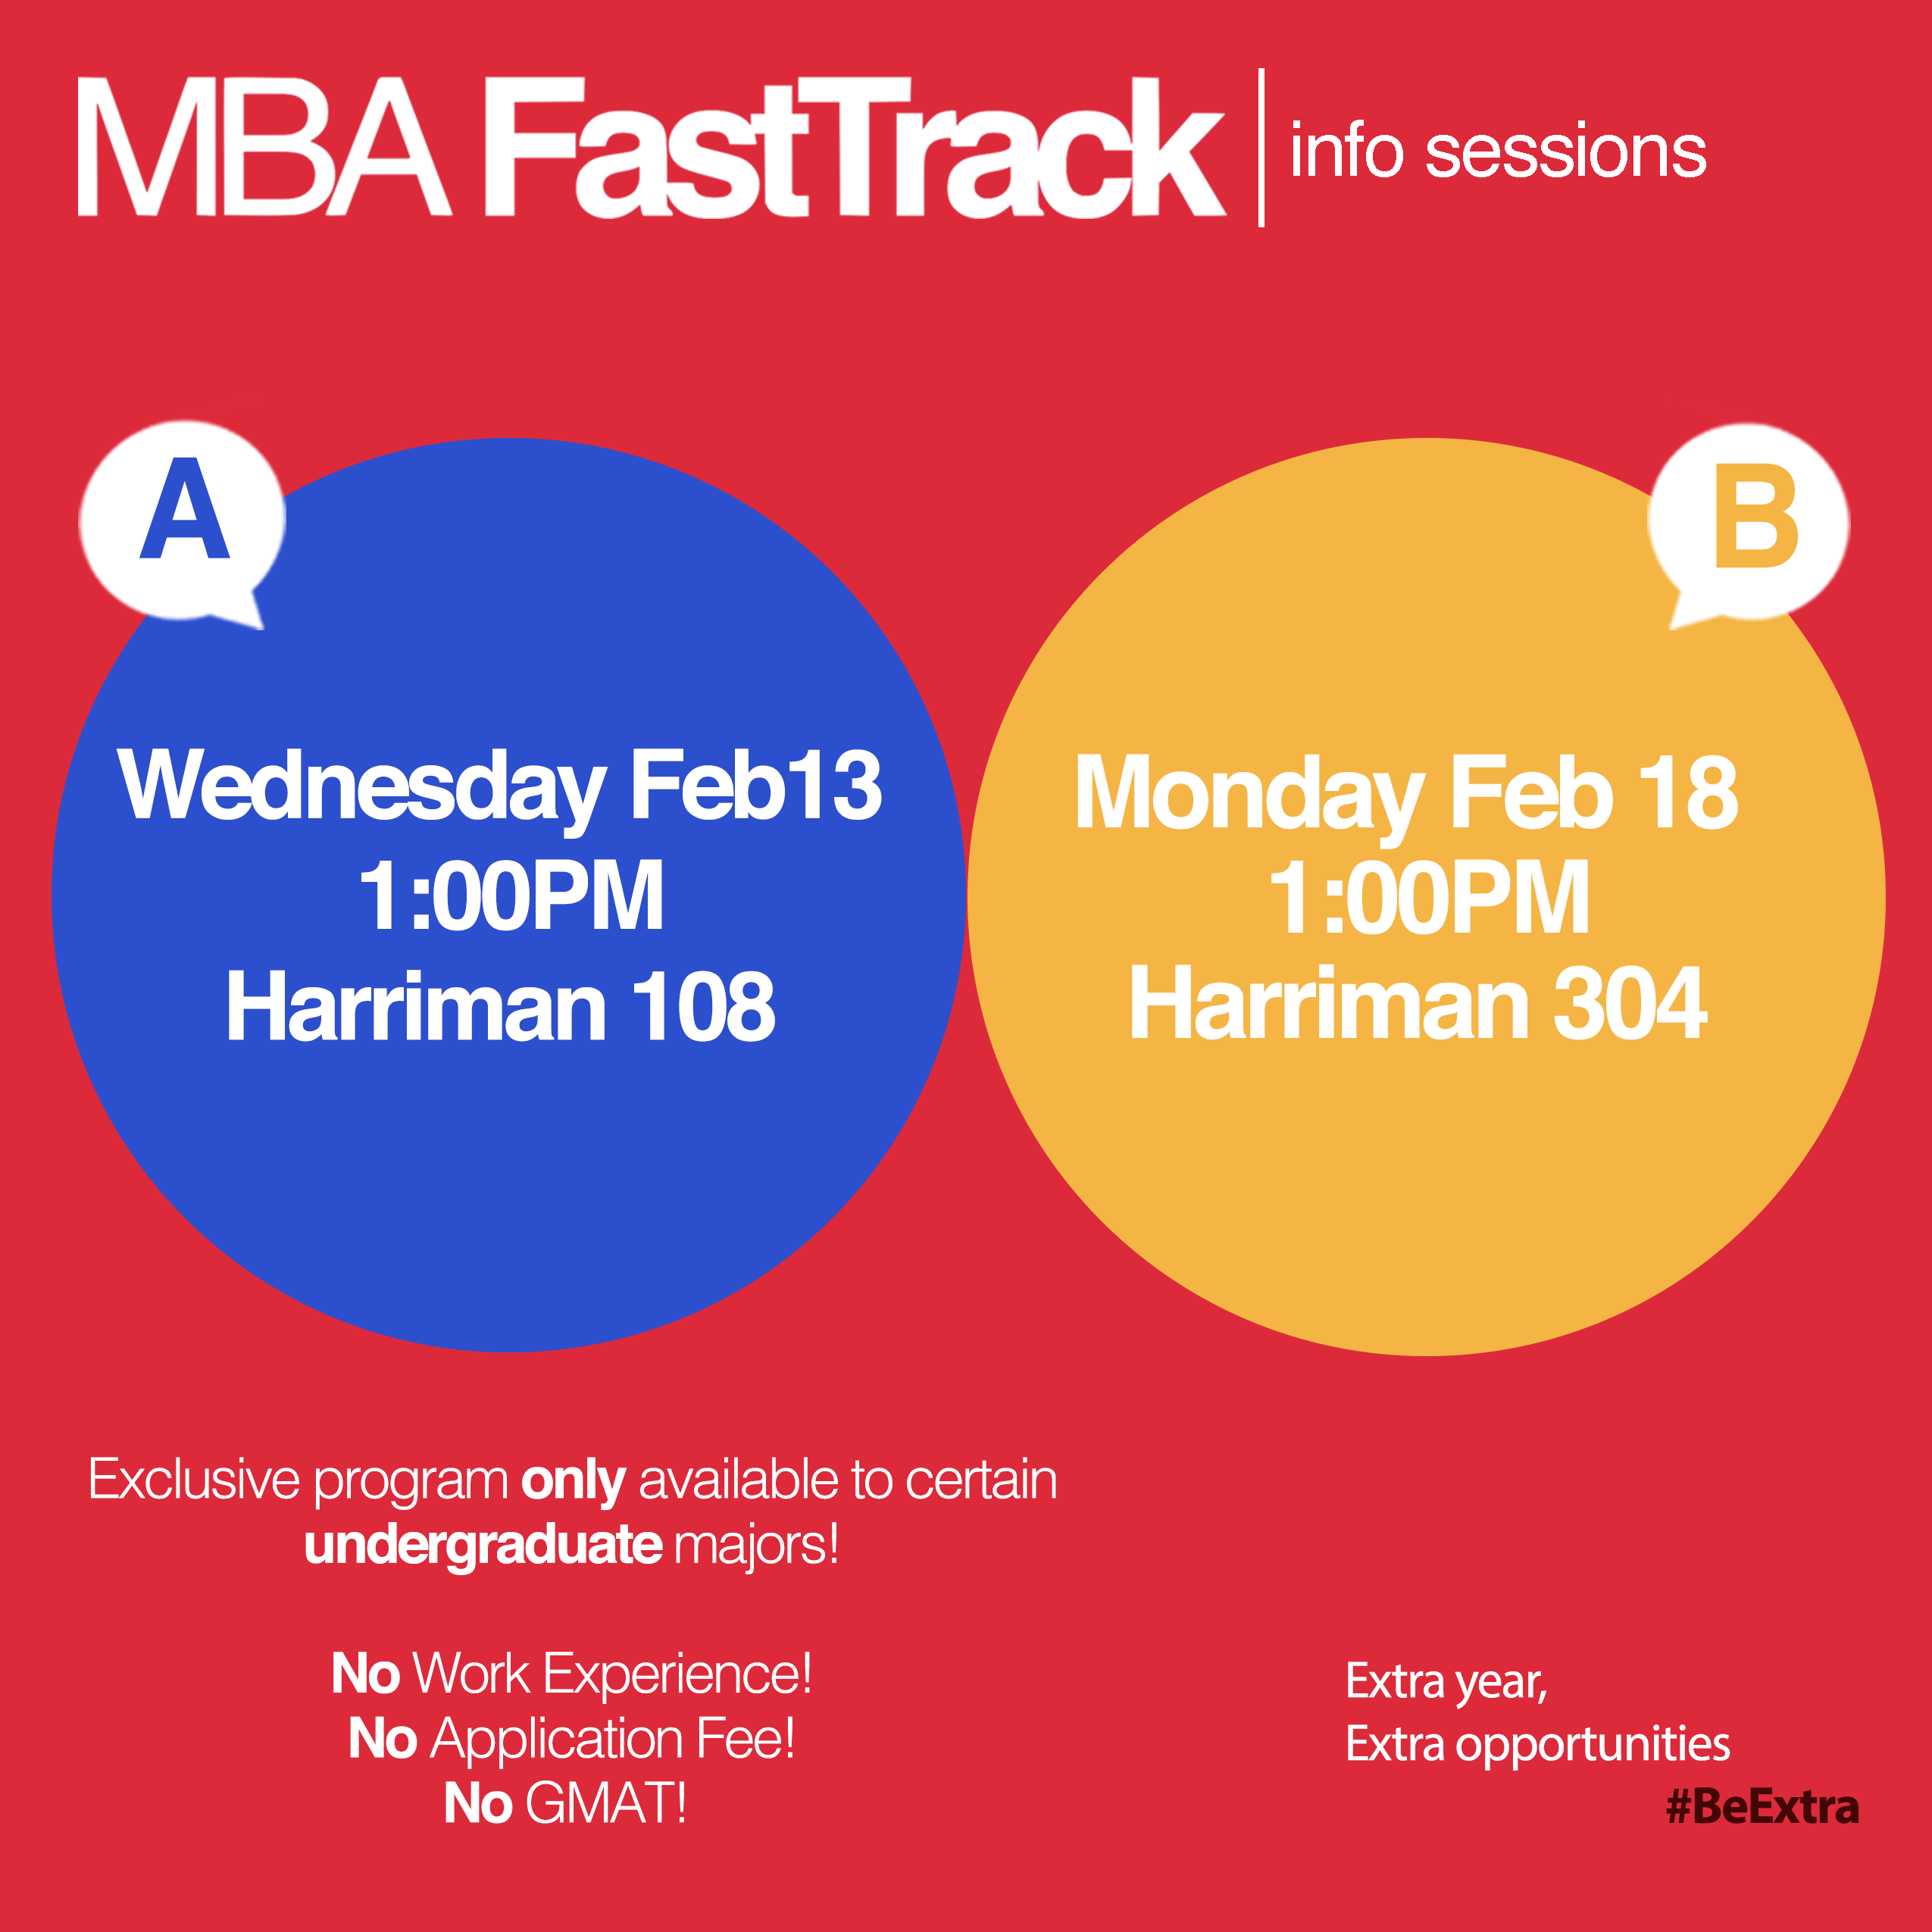 mba fast track